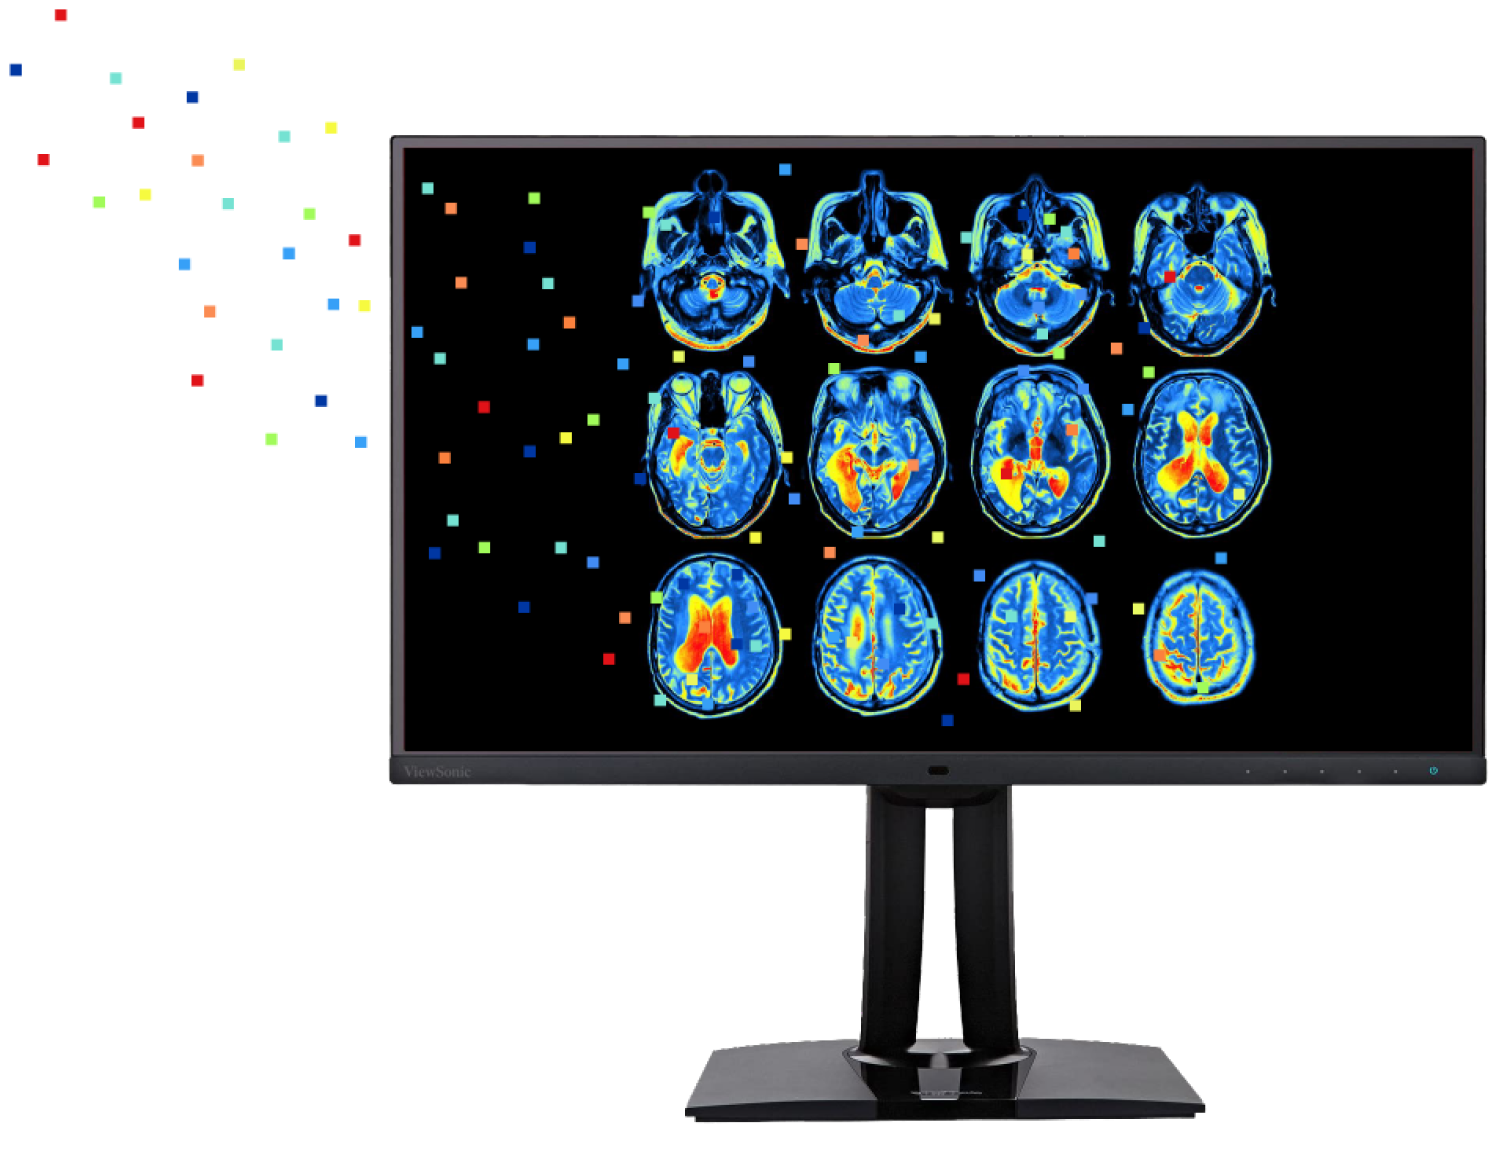 Brain scans, showing glucose levels, that help researchers diagnose degenerative diseases with artificial intelligence